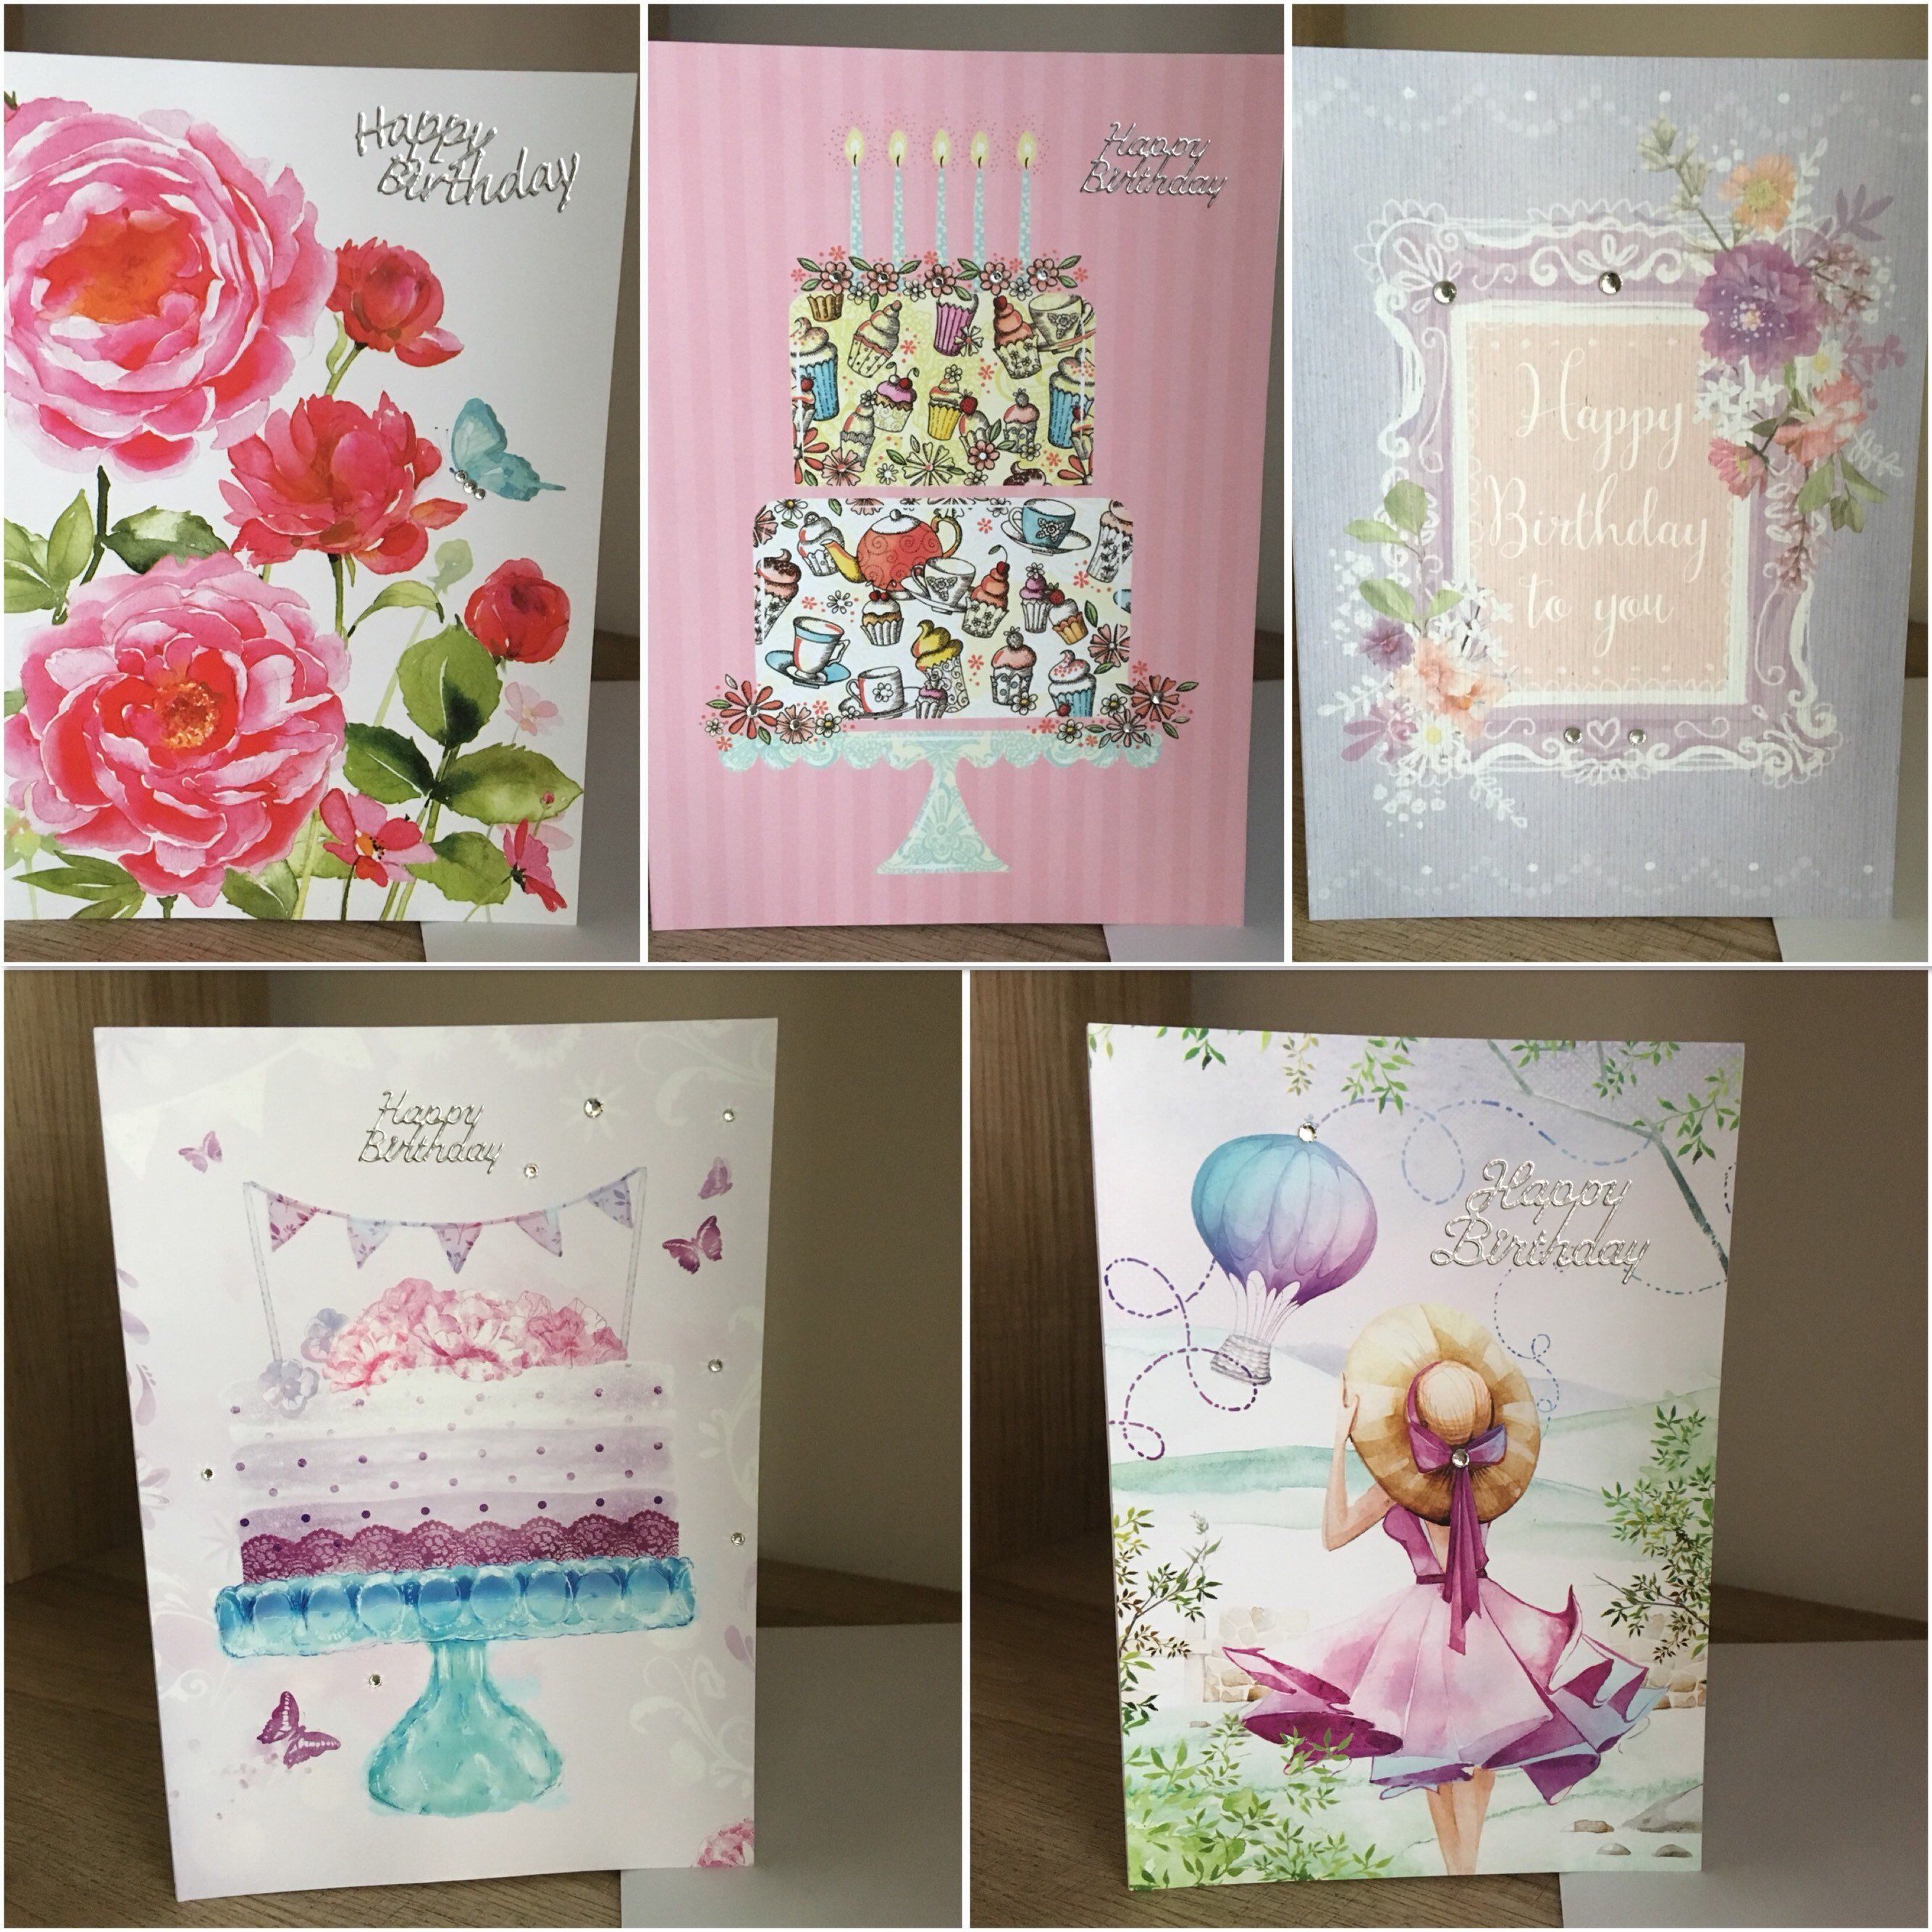 Pack of handmade birthday cards for women and girls with birthday